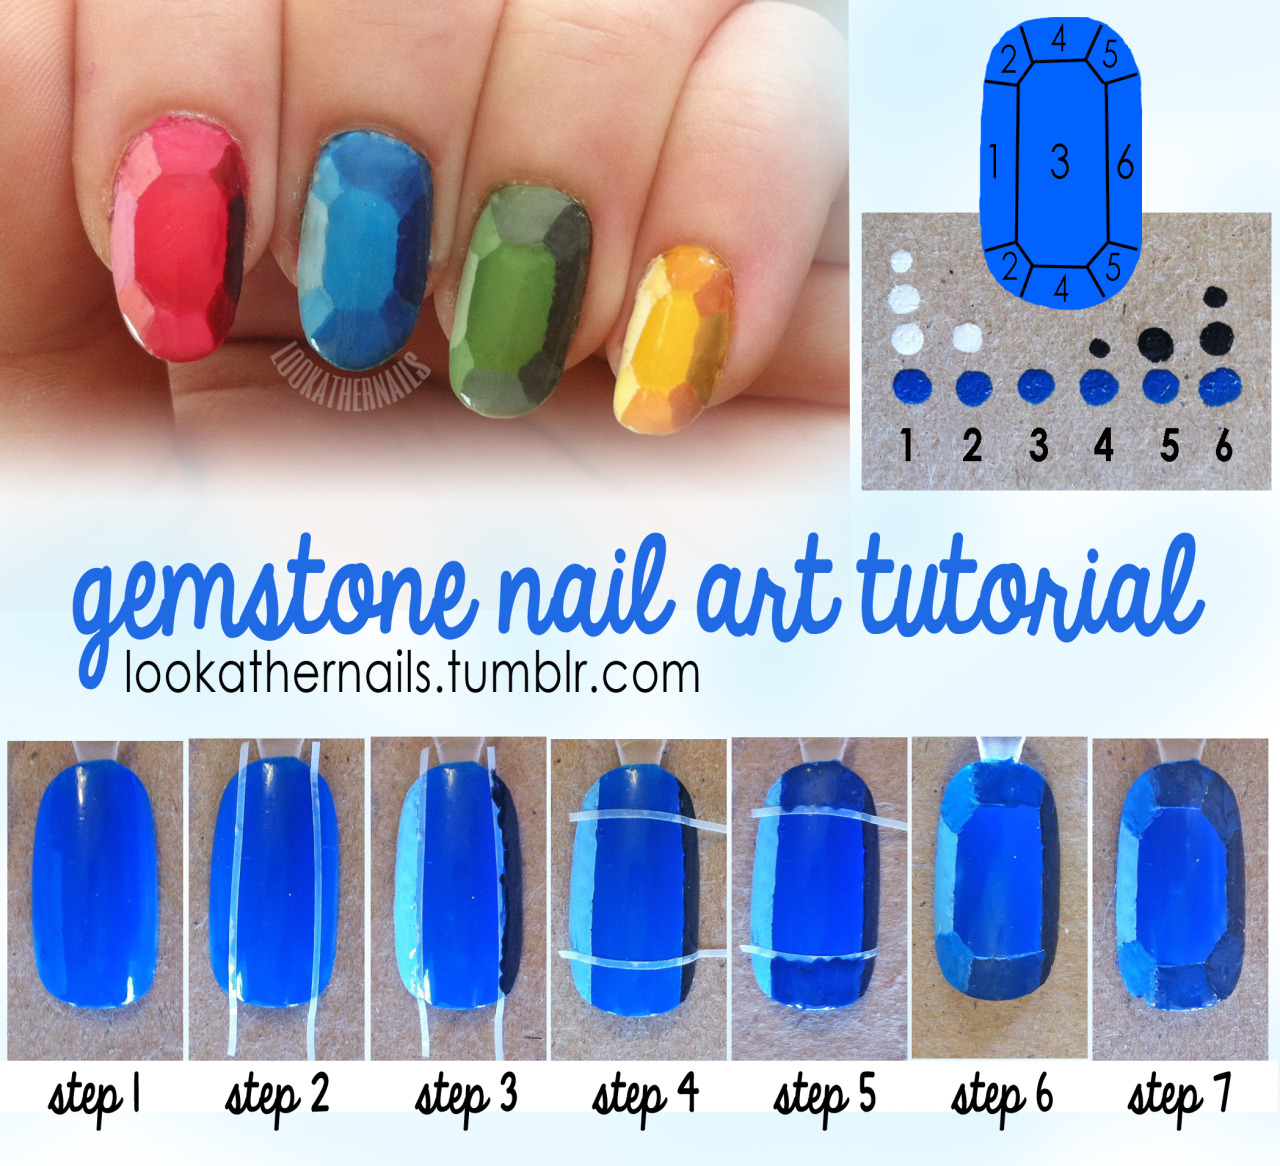 bassoonerthebetter:  yuugene:  stormhornets:  adhoption:  scorpiofruit:  lesfemmesreve:  duuuuude  man how yall gonna contour a nail  INFINITY GAUNTLET  so that's why you liked this post..  FINGER RUPEES  thejedielfqueen rainbow-narwhal-art